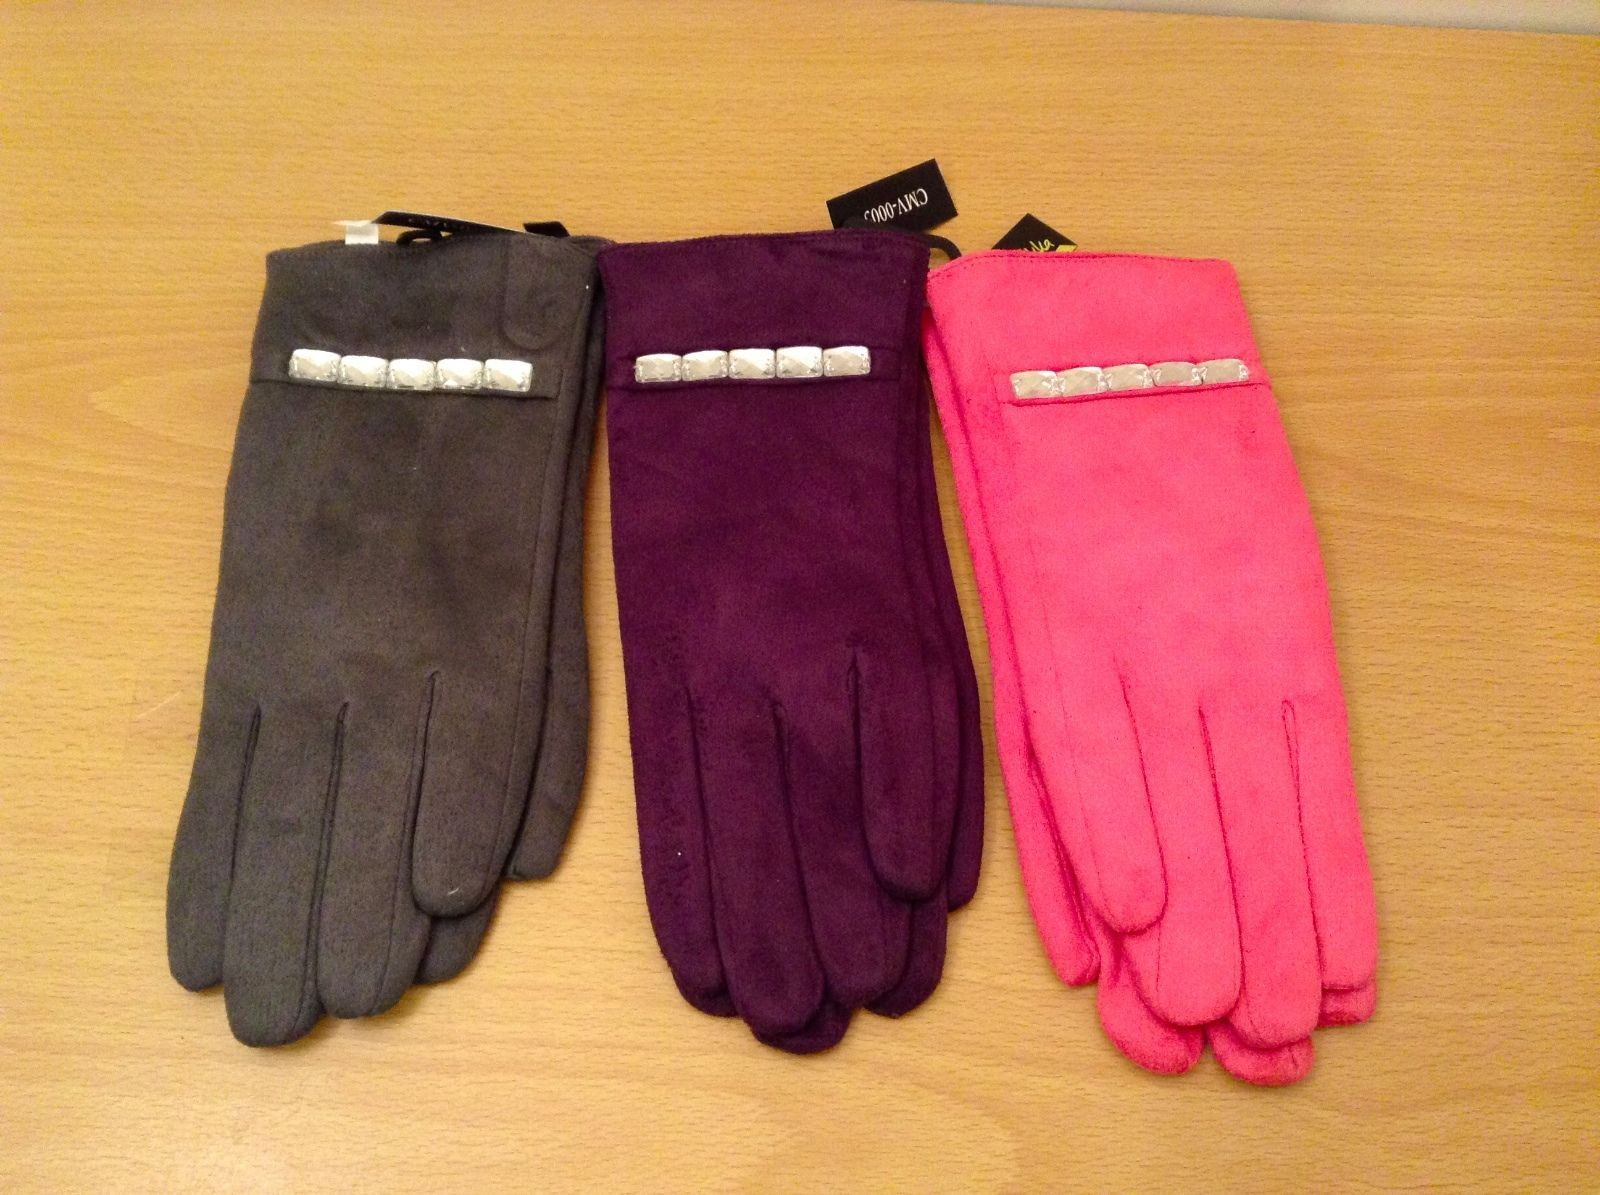 New Ladies Fabric Gloves Faux Fur Lining Clear Crystal studs, choice of color